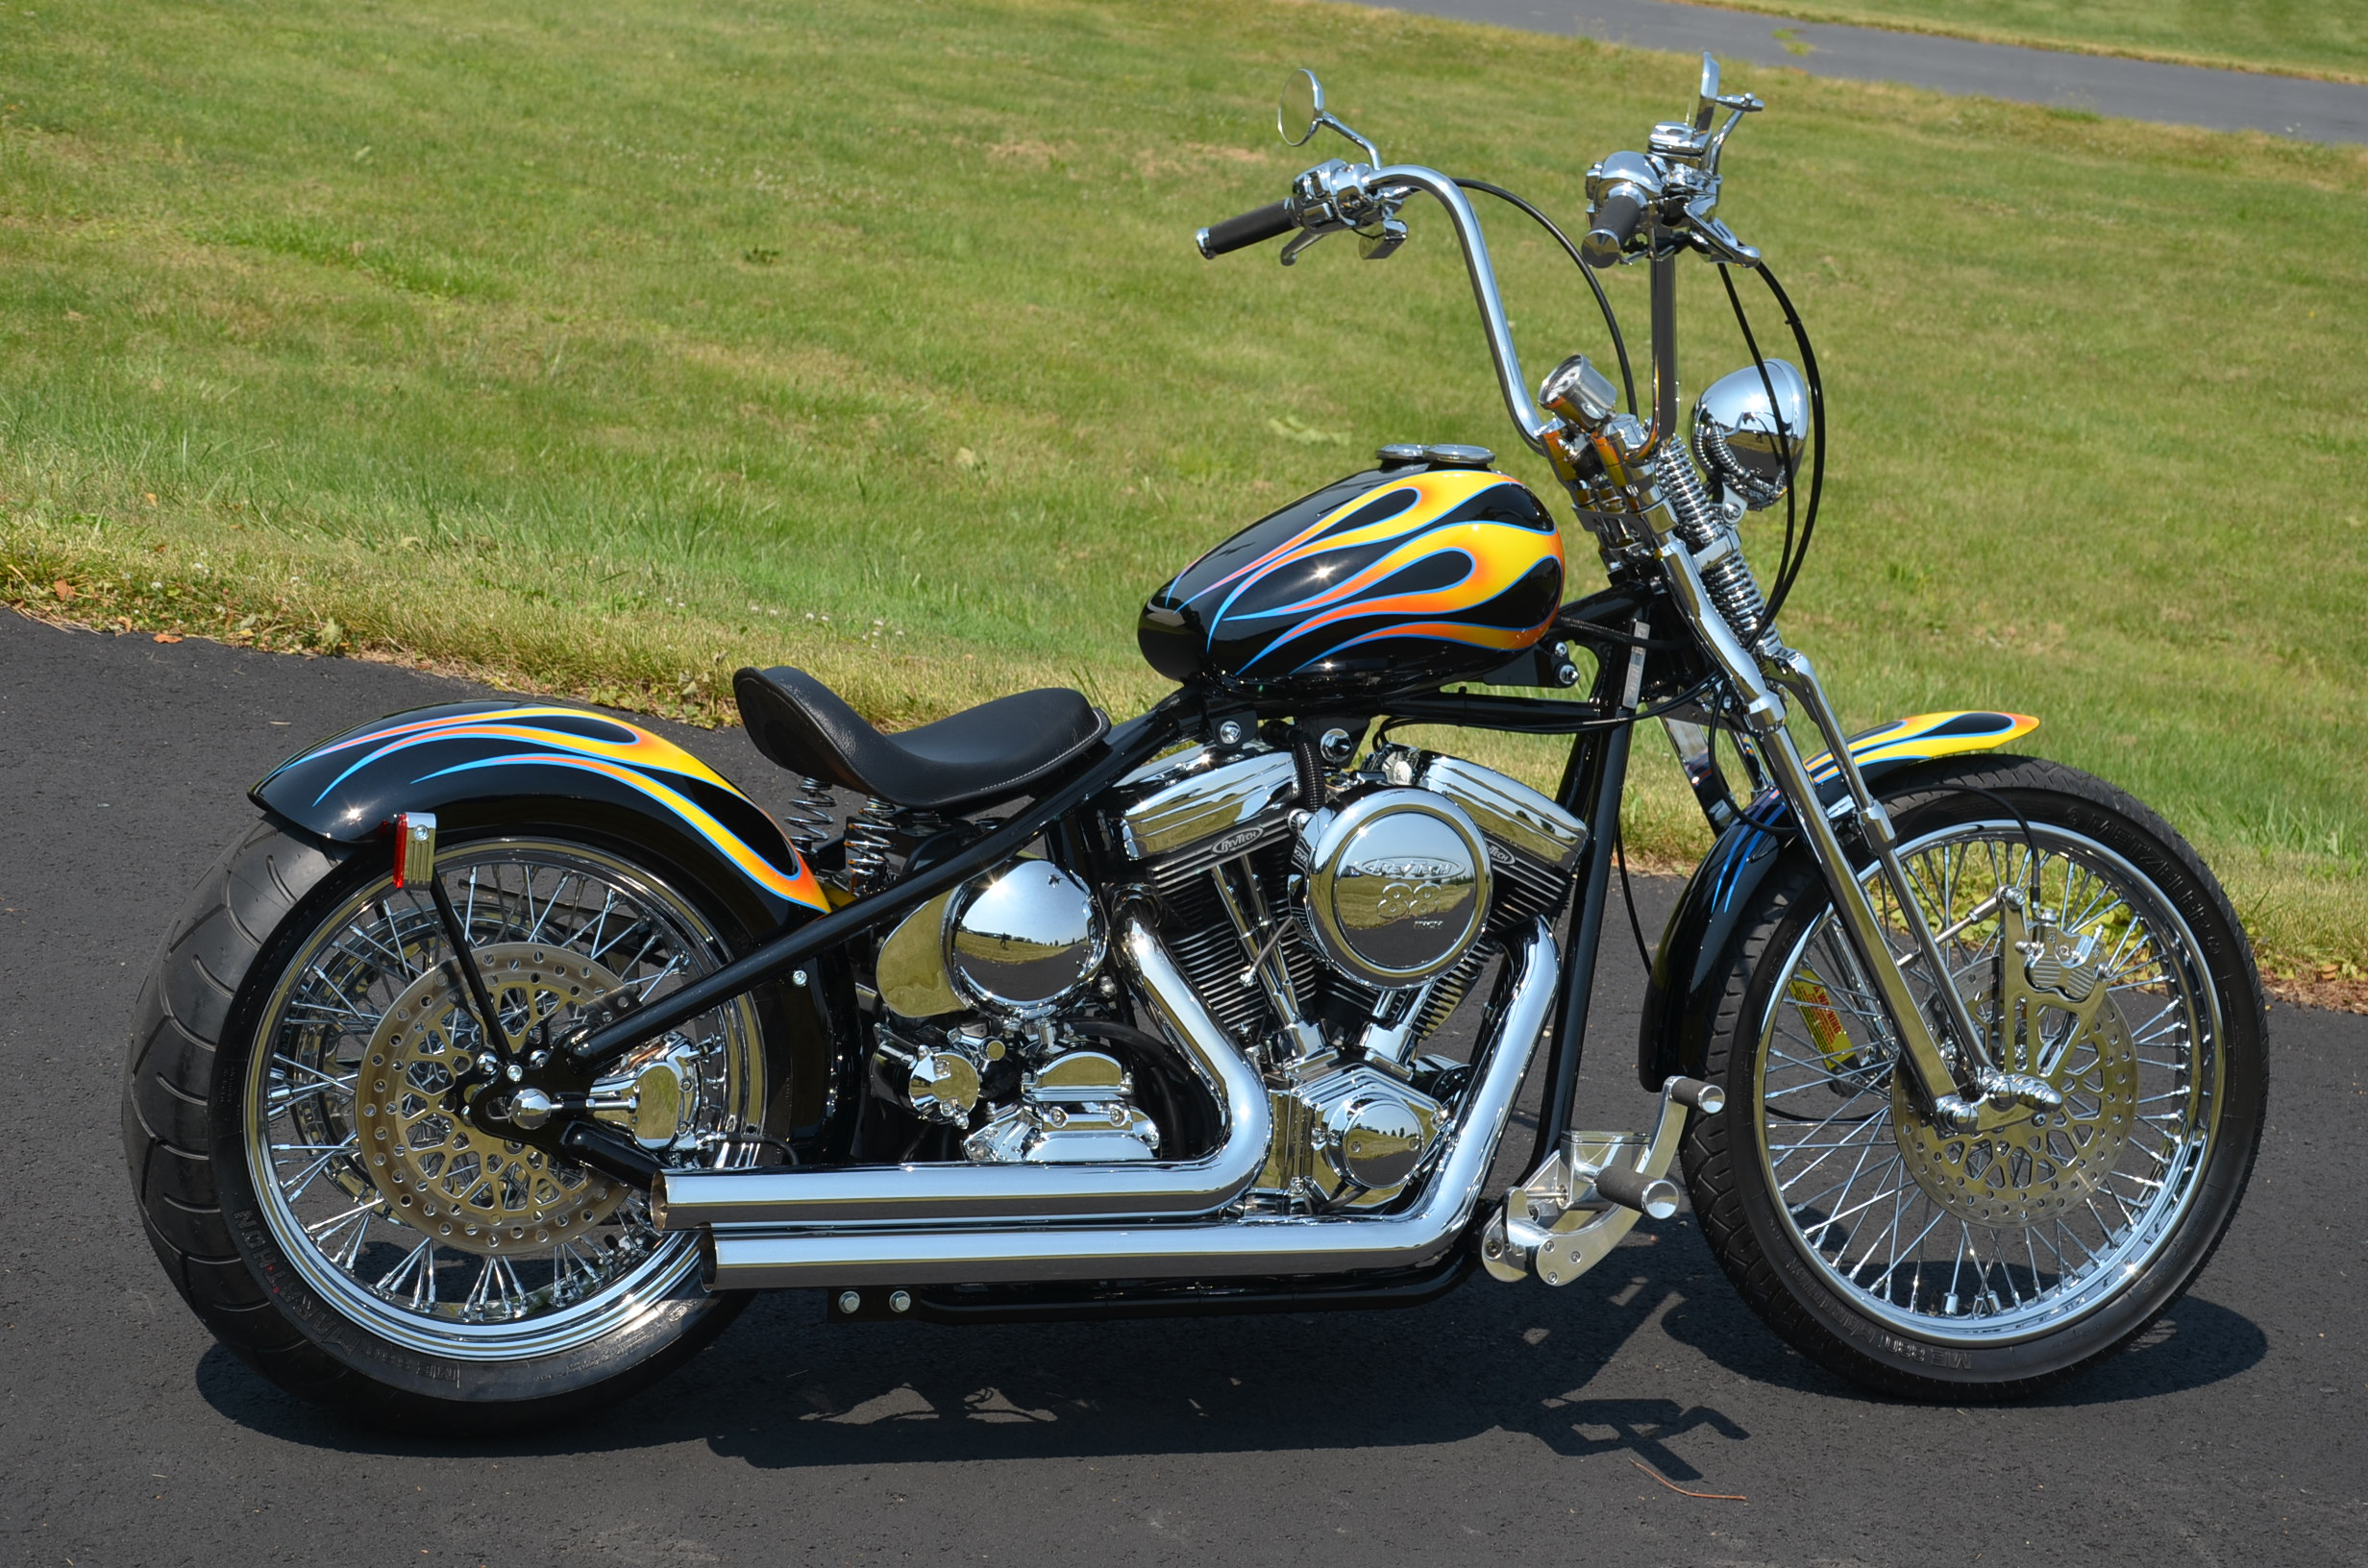 2015 american classic motors bobber chopper for sale on for American classic motors for sale